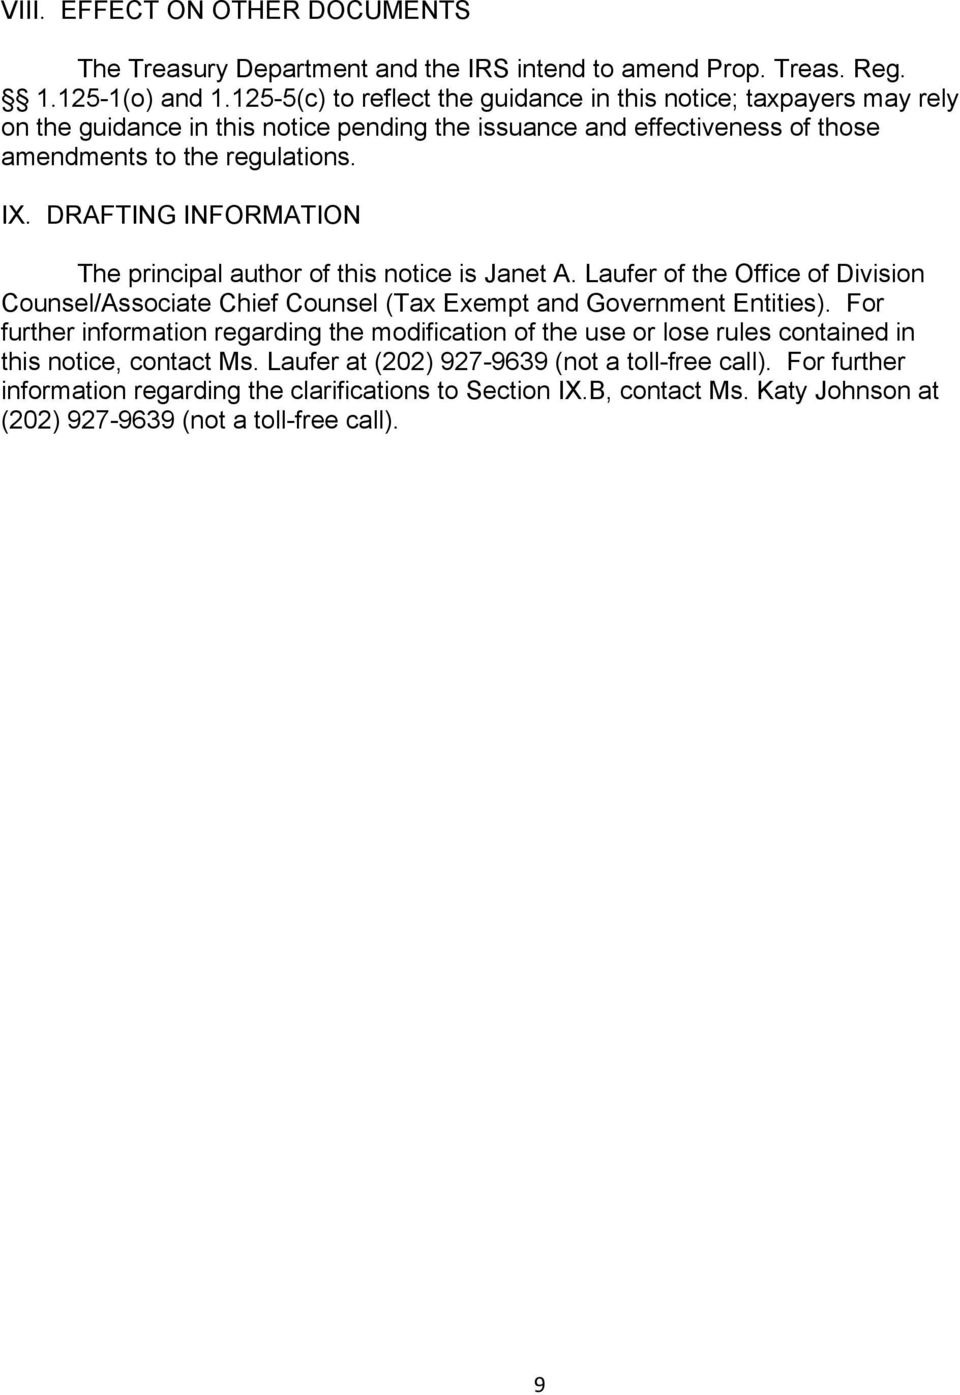 DRAFTING INFORMATION The principal author of this notice is Janet A. Laufer of the Office of Division Counsel/Associate Chief Counsel (Tax Exempt and Government Entities).